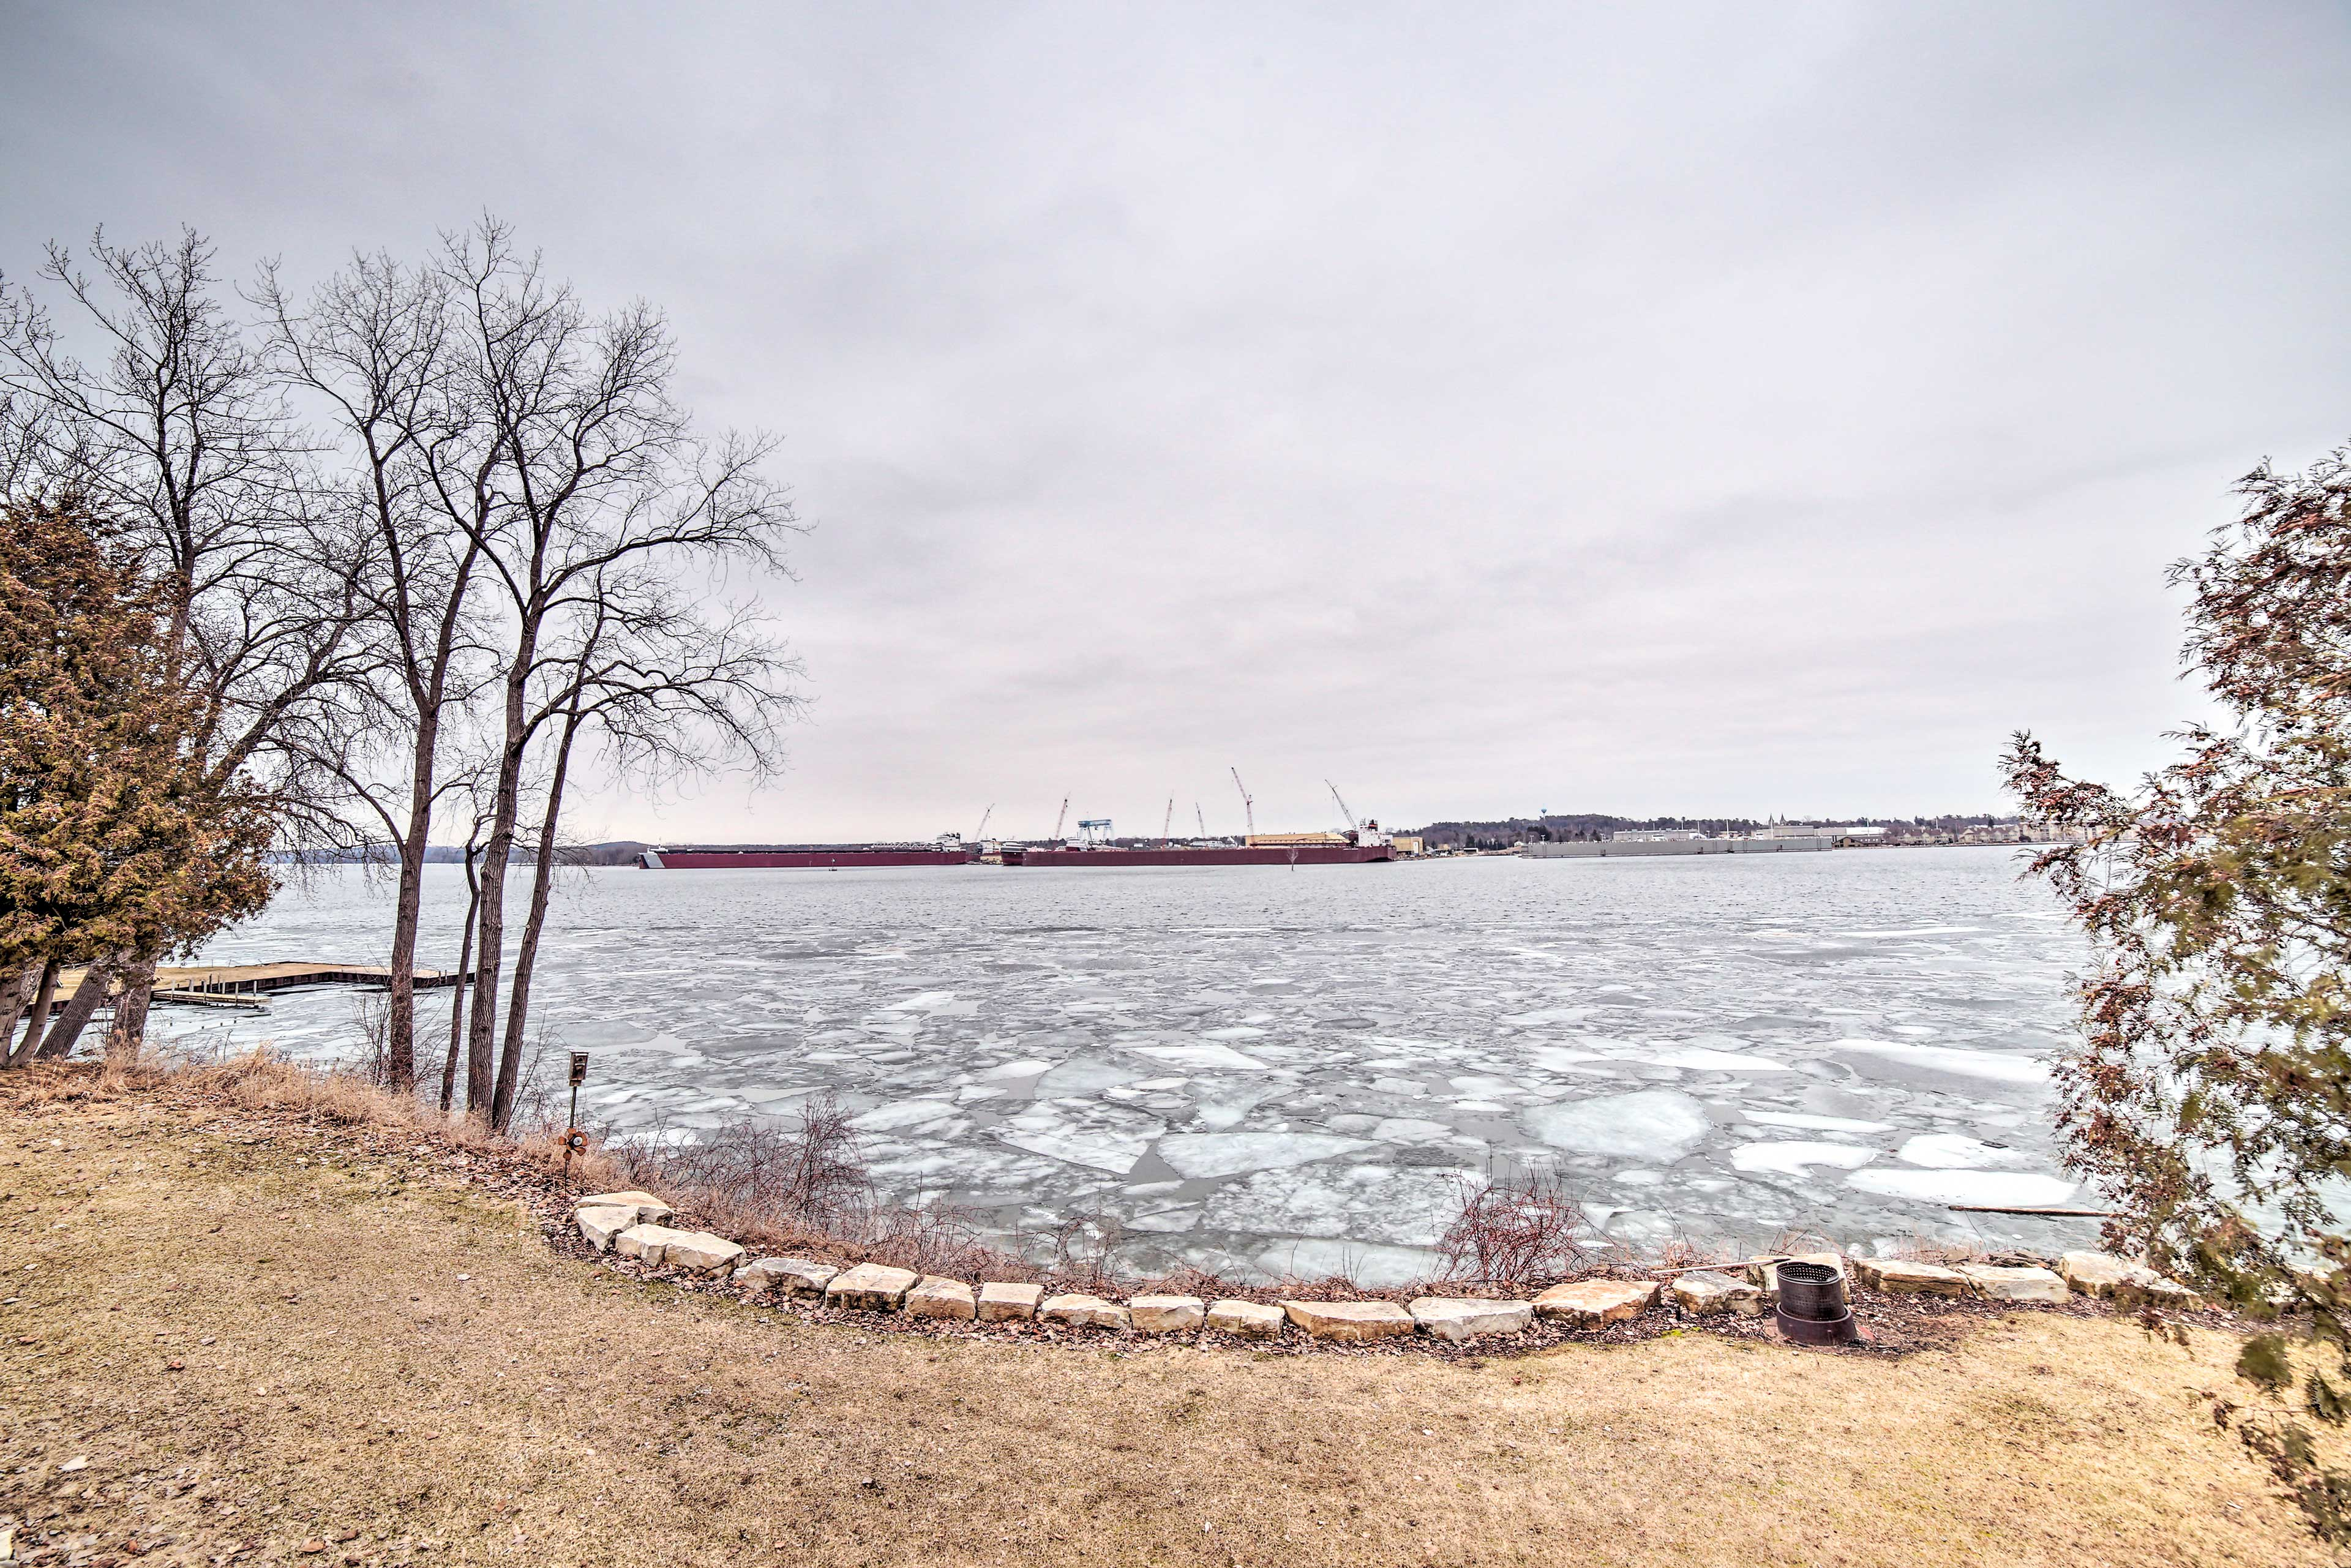 Take a short stroll down to the Sturgeon Bay waterfrornt!